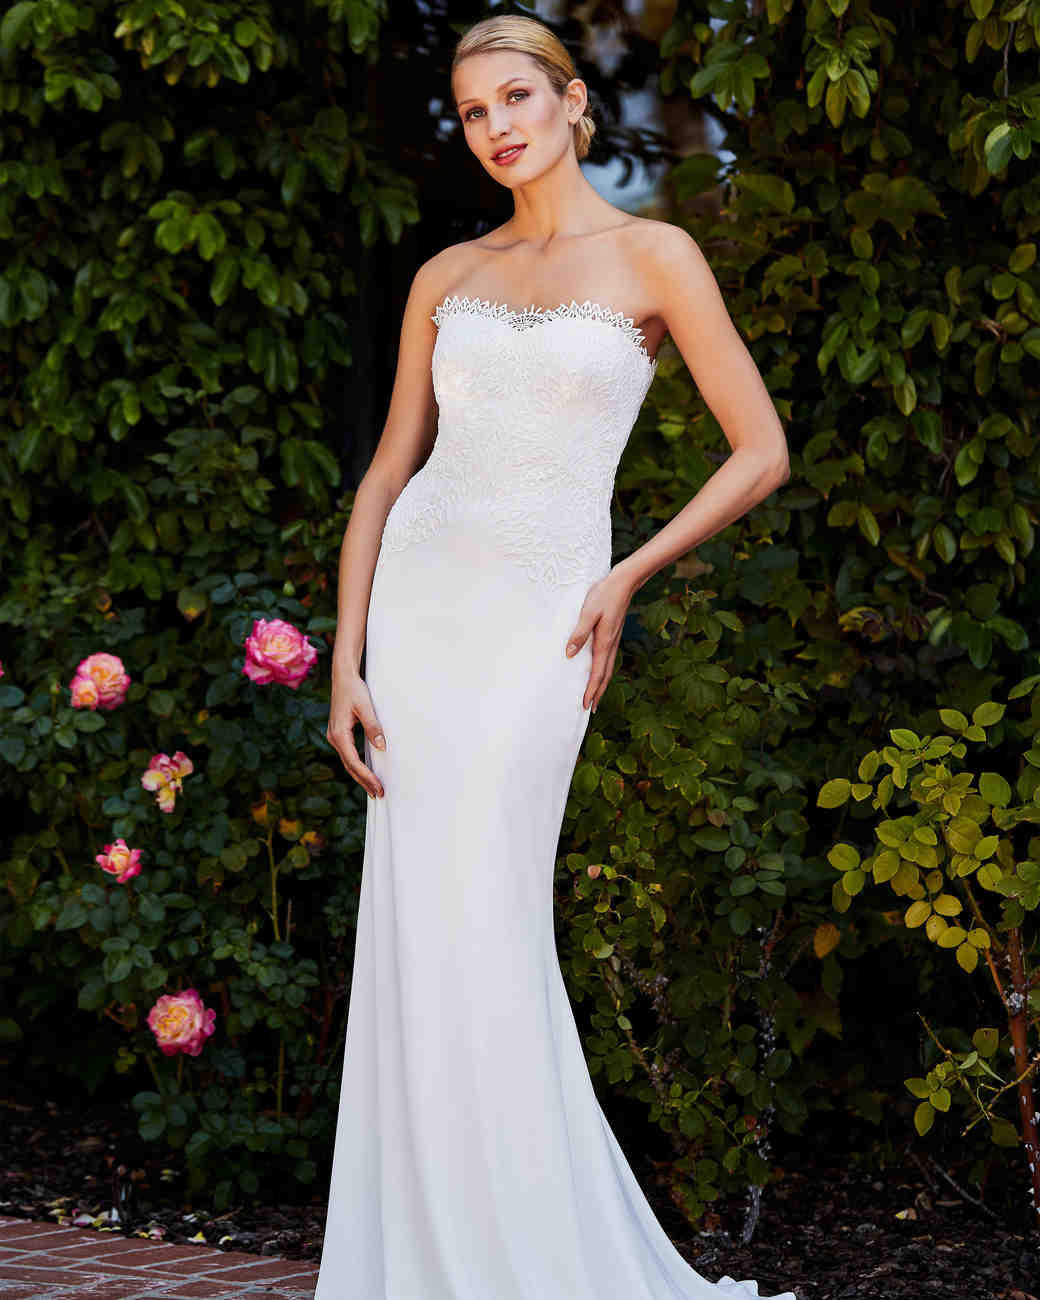 tadashi shoji wedding dress fall 2018 sleeveless lace